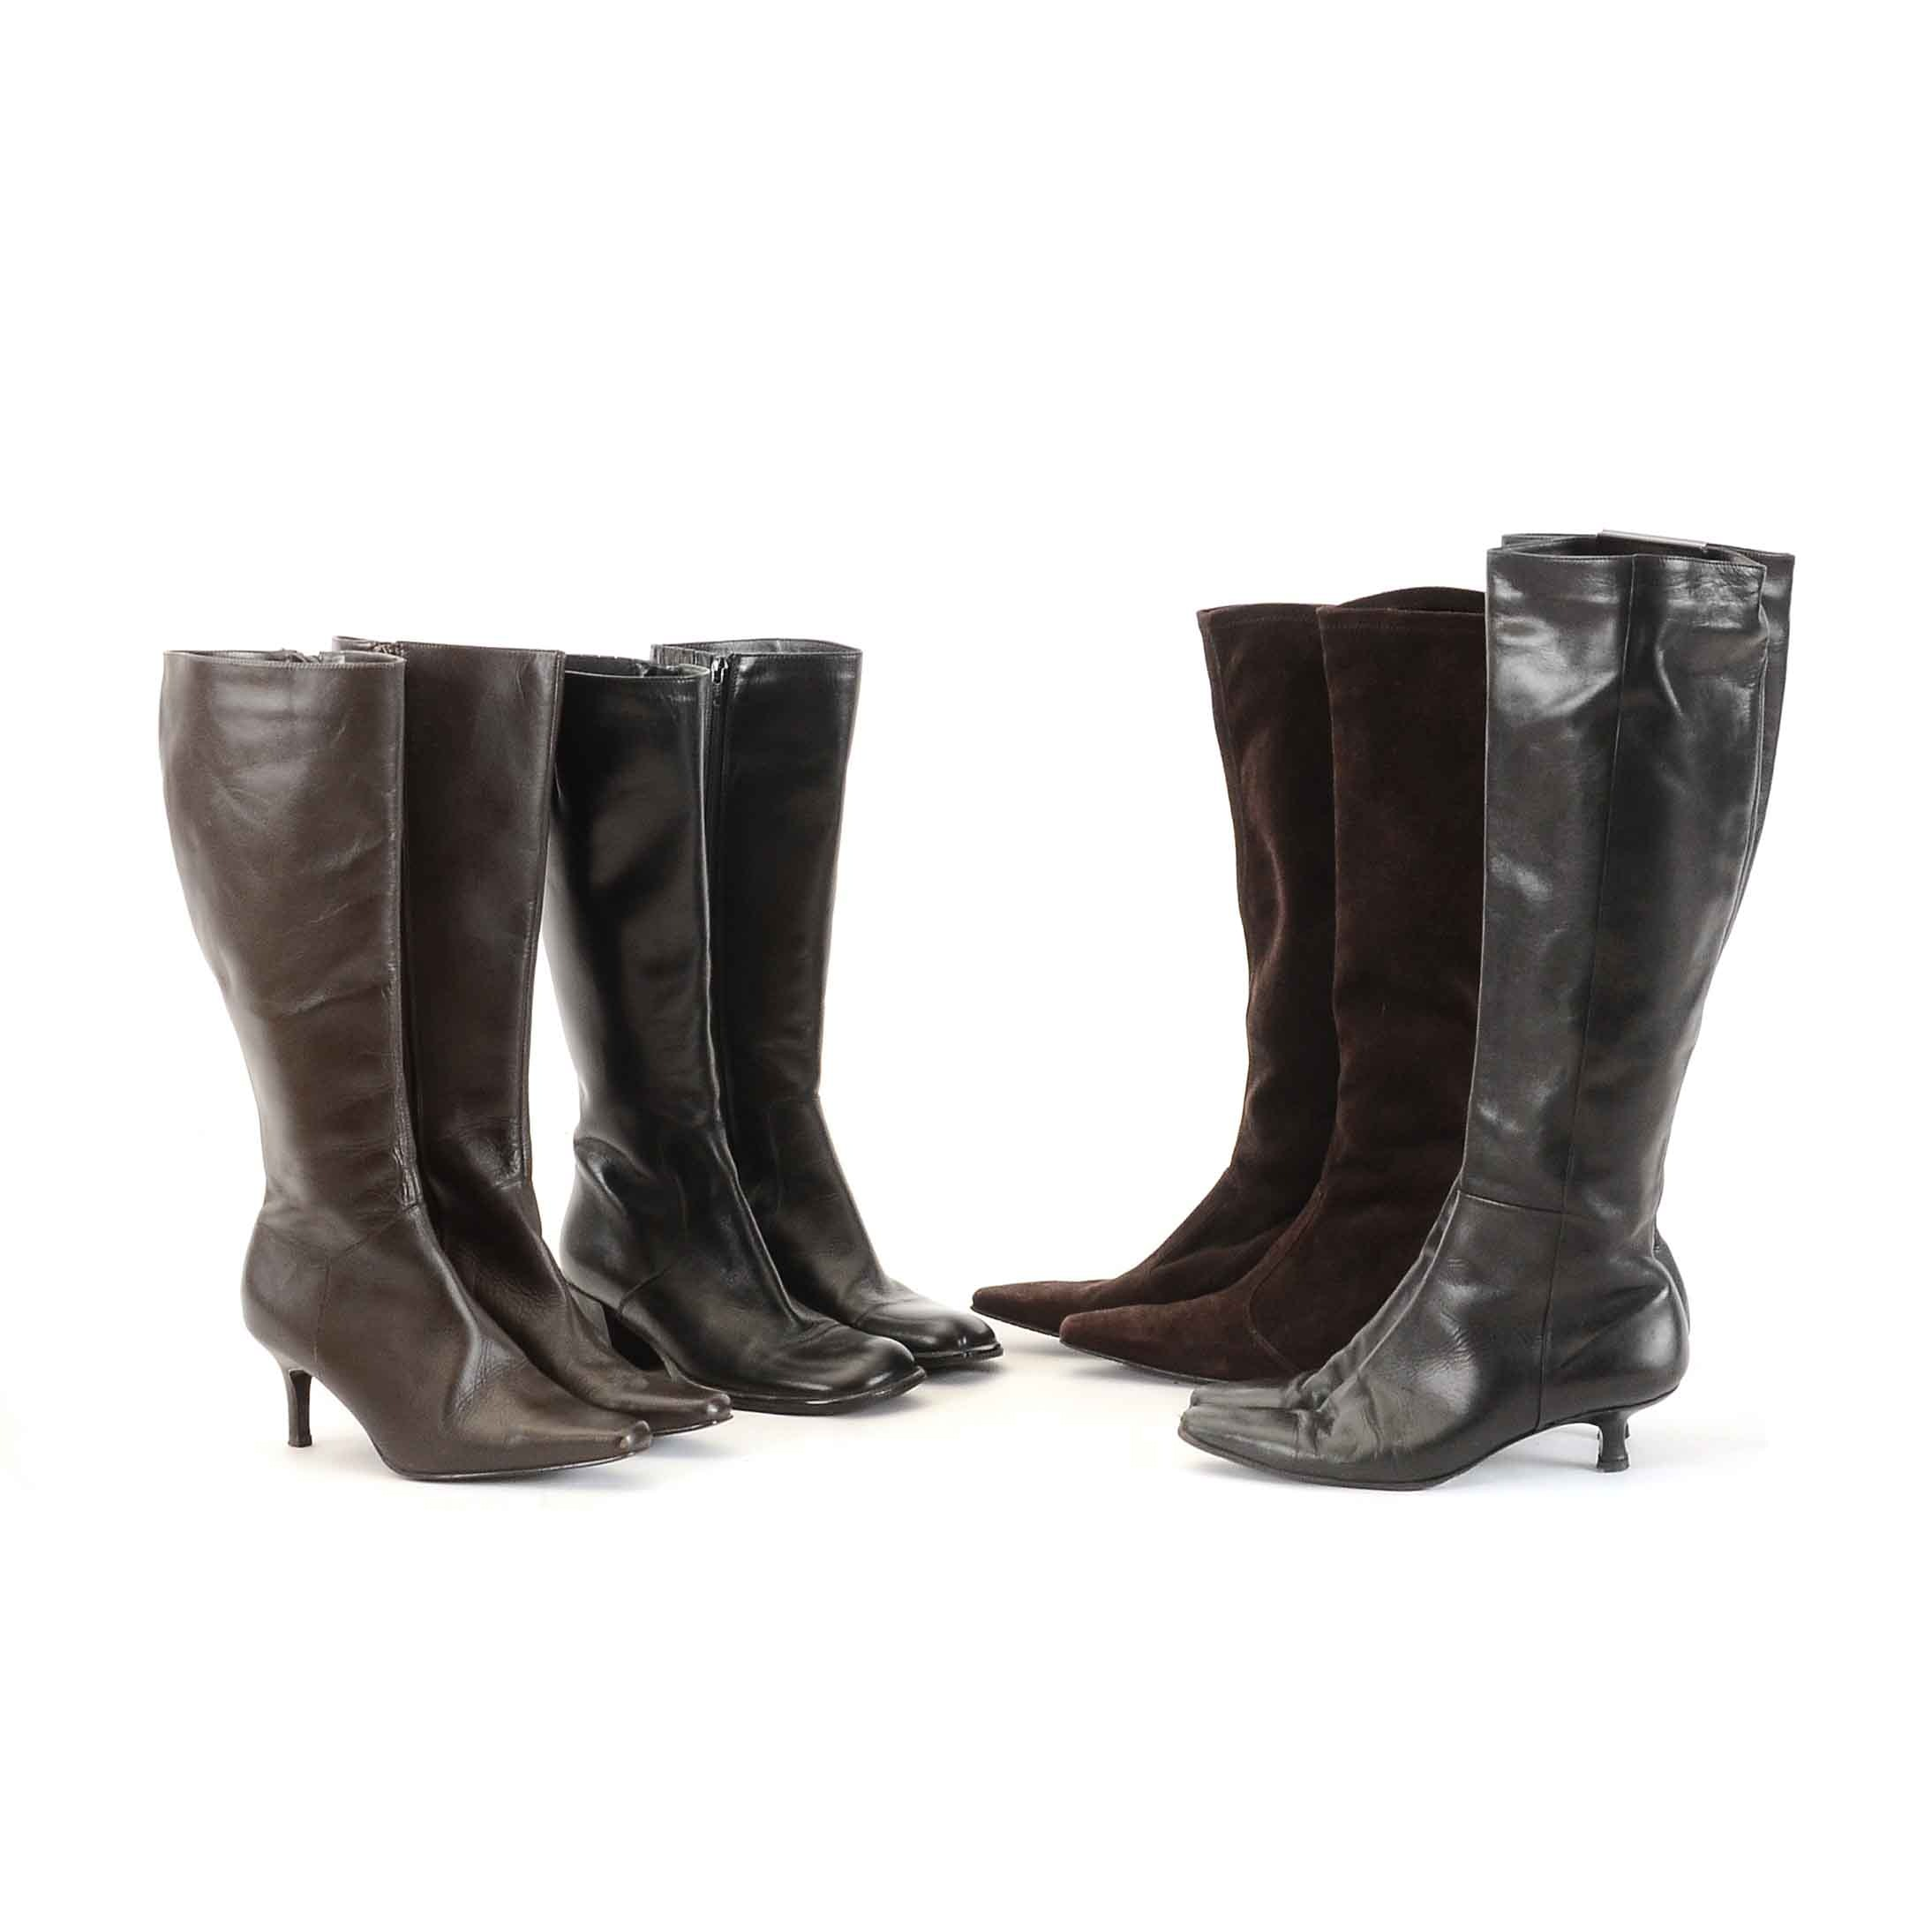 Collection of Women's High Heel Leather Boots including Stuart Weitzman